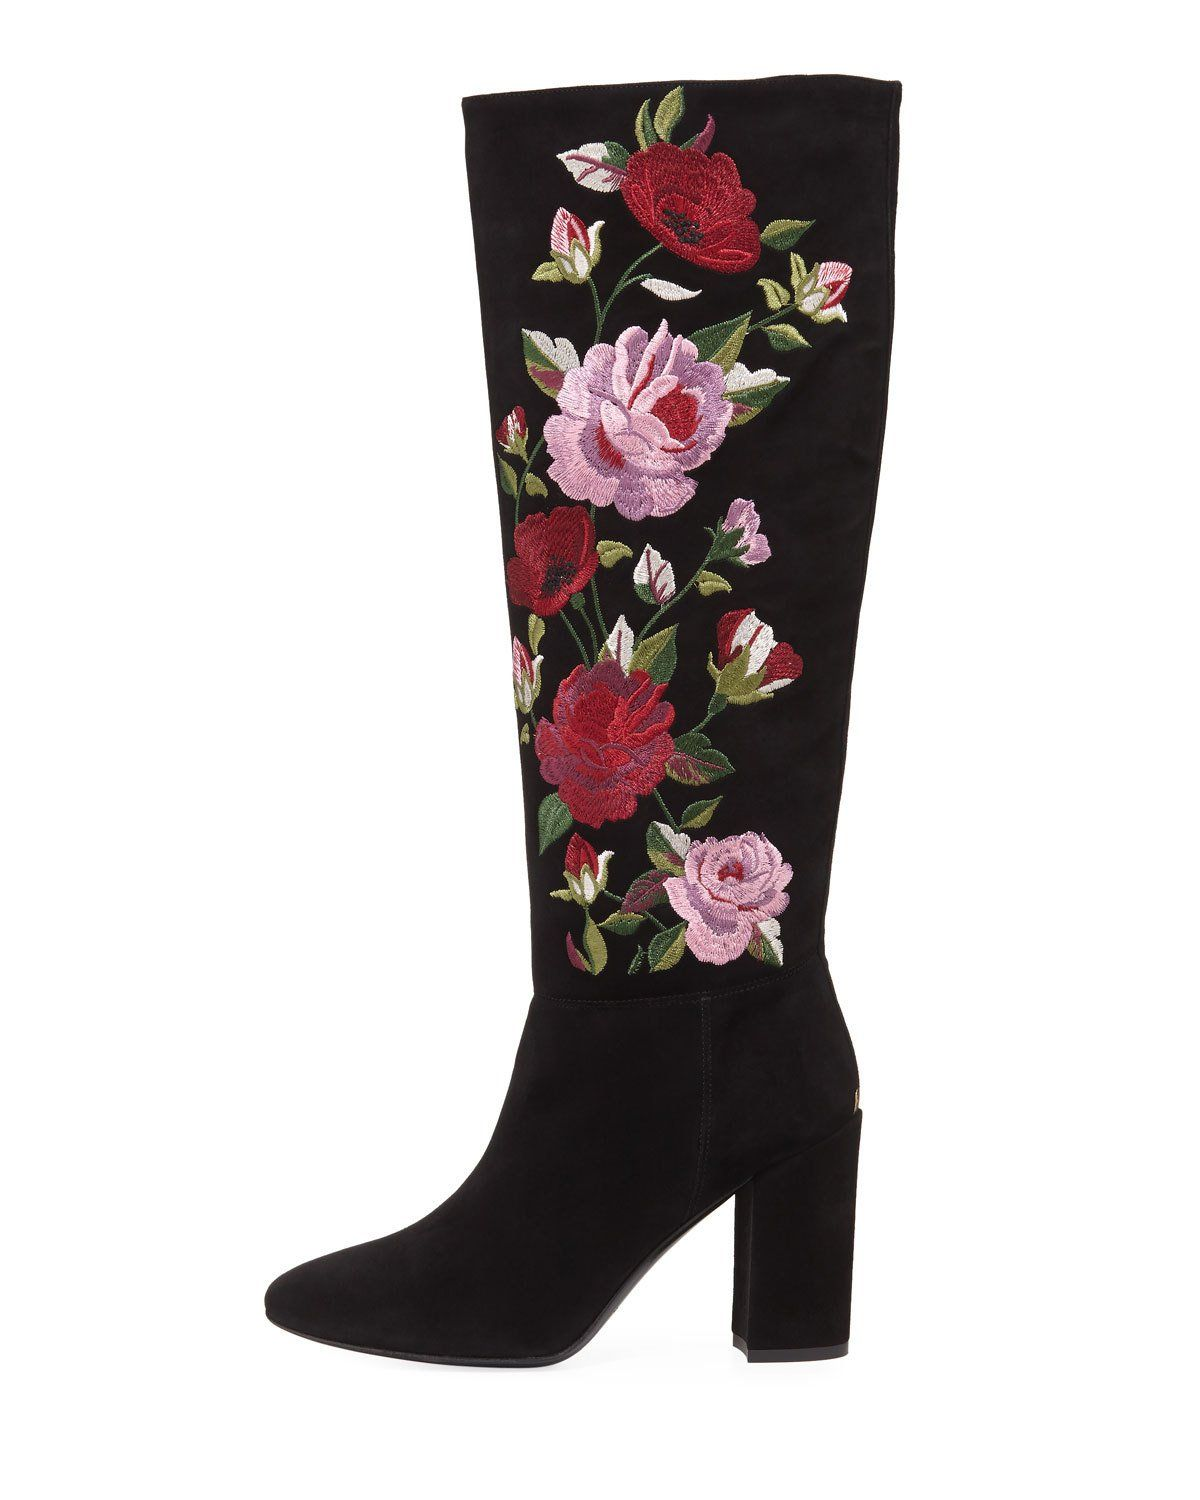 f1495e95903 Kate Spade New York greenfield floral-embroidered knee-high boot ...